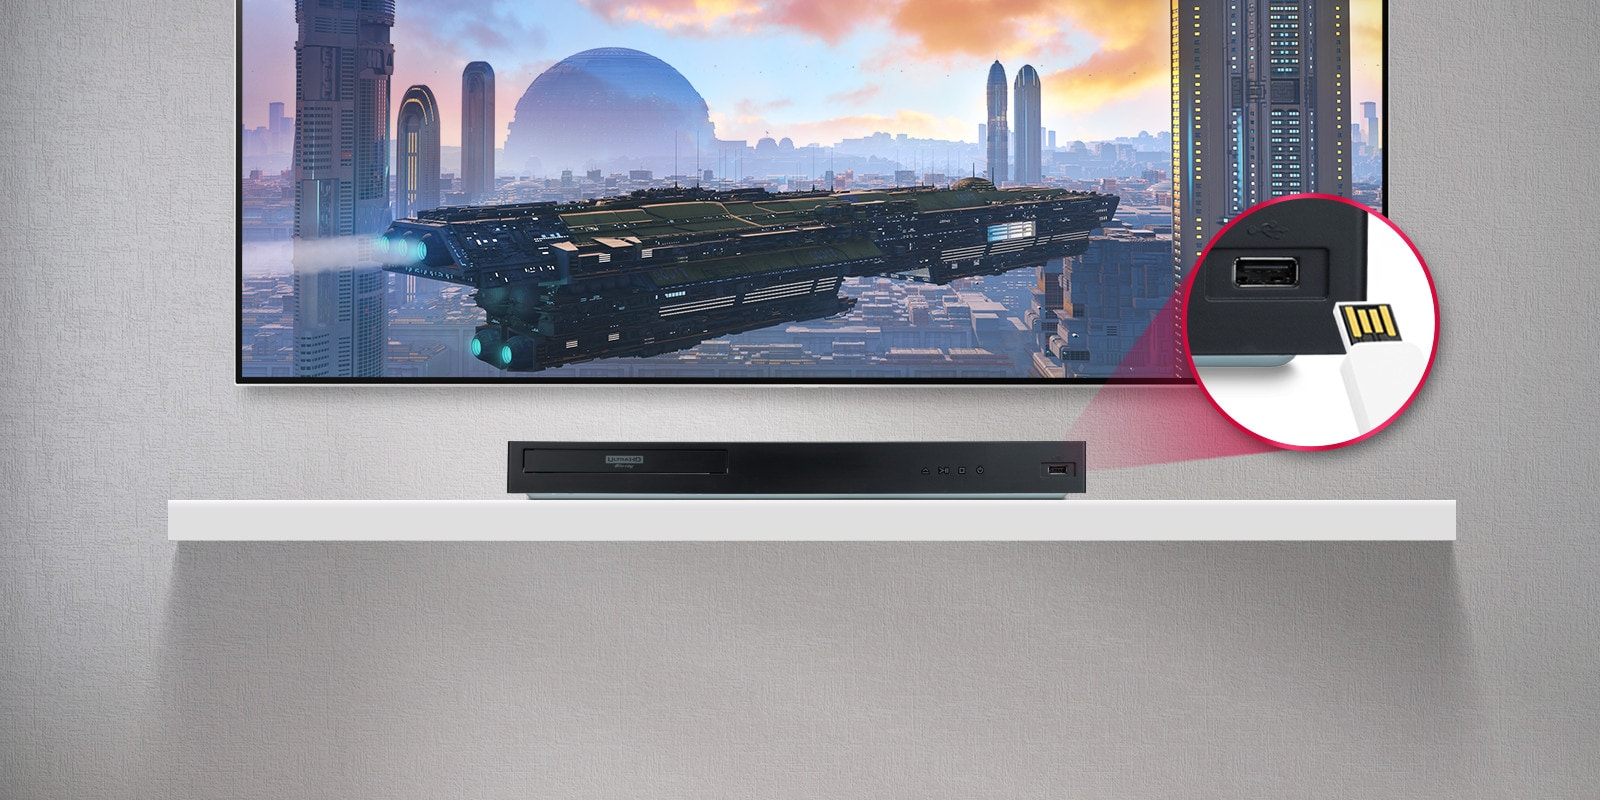 LG DP132 Video Players - Make the most of your DVDs with the